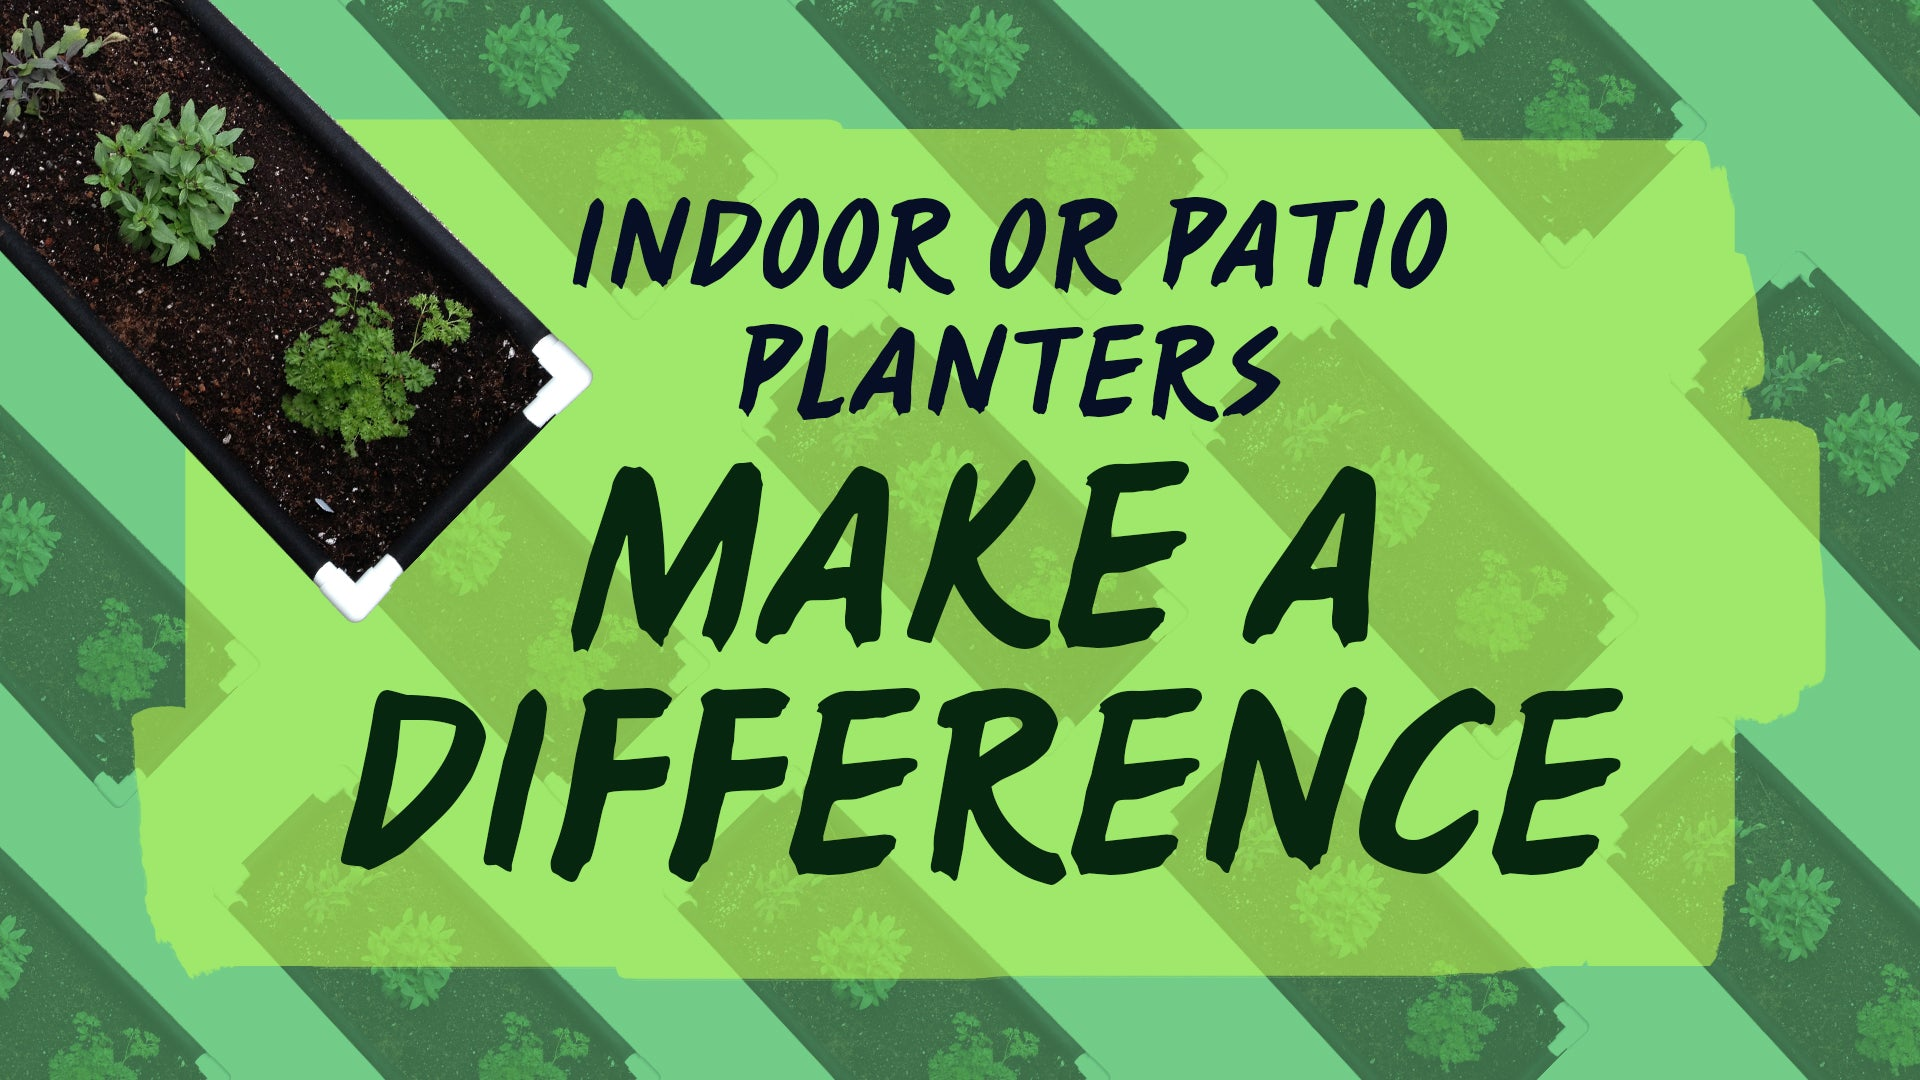 Indoor or patio planters make a difference